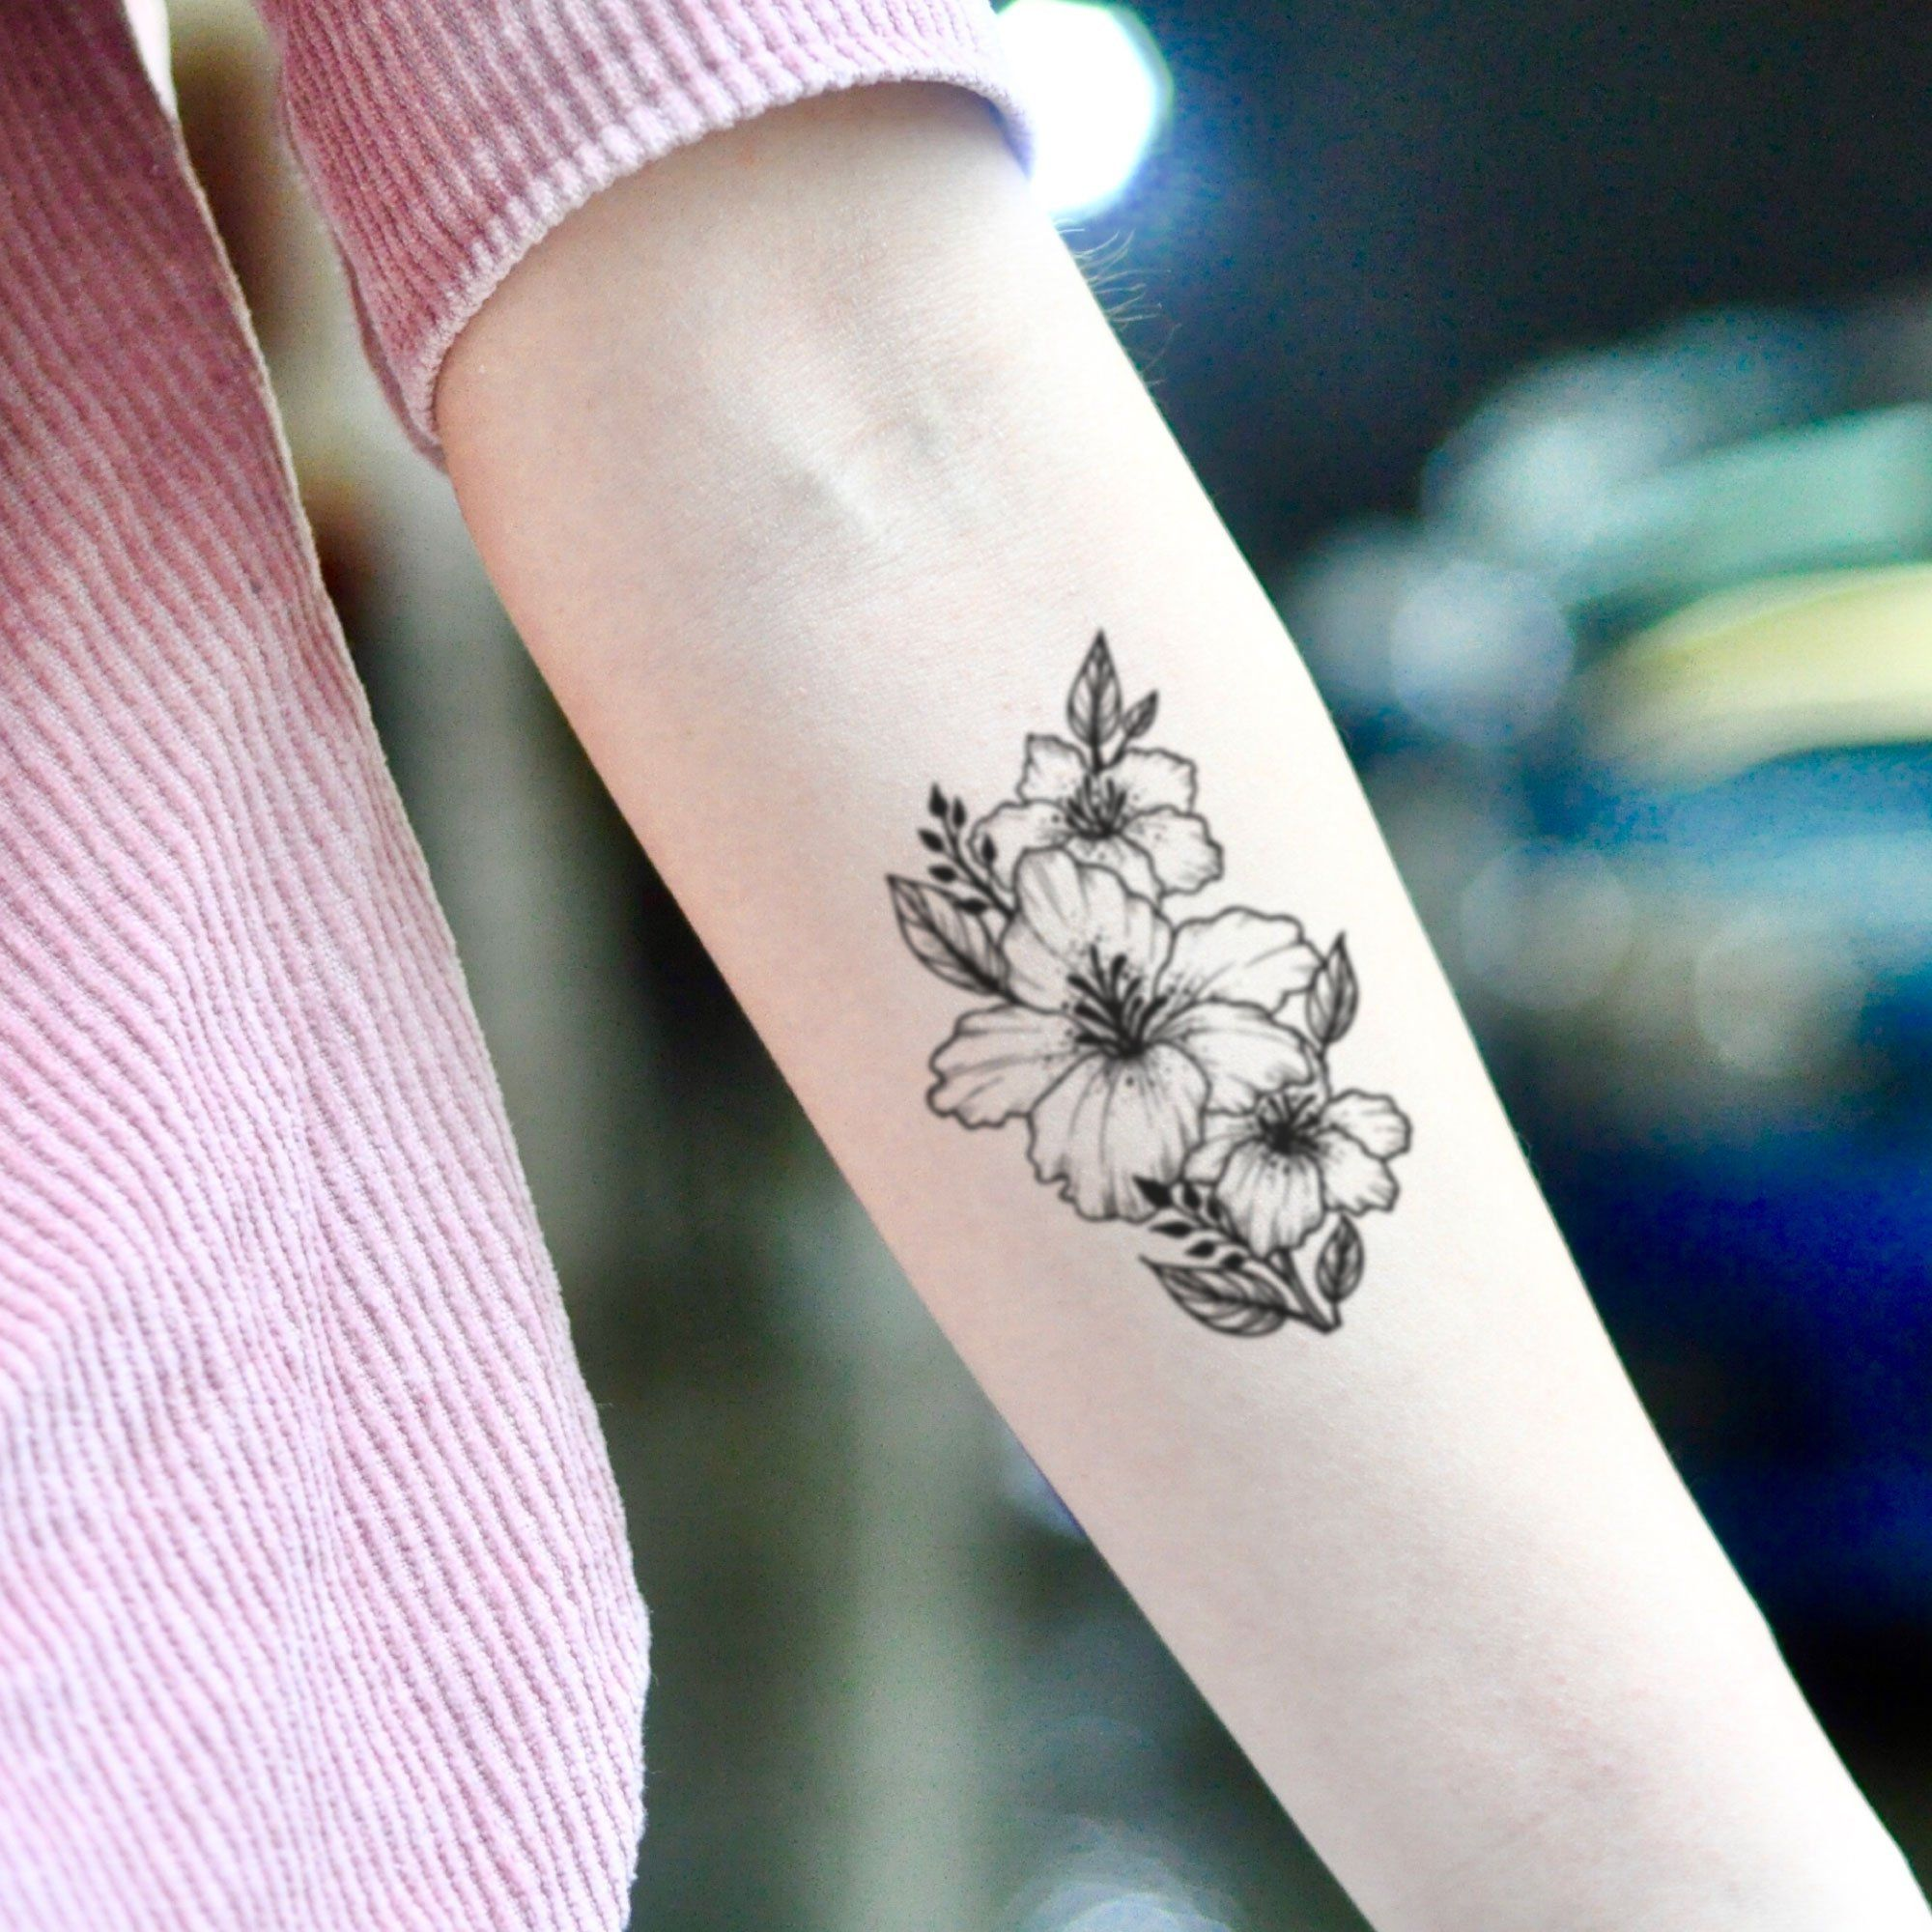 Pin by Brittney on Tattoo (With images) Flower tattoo